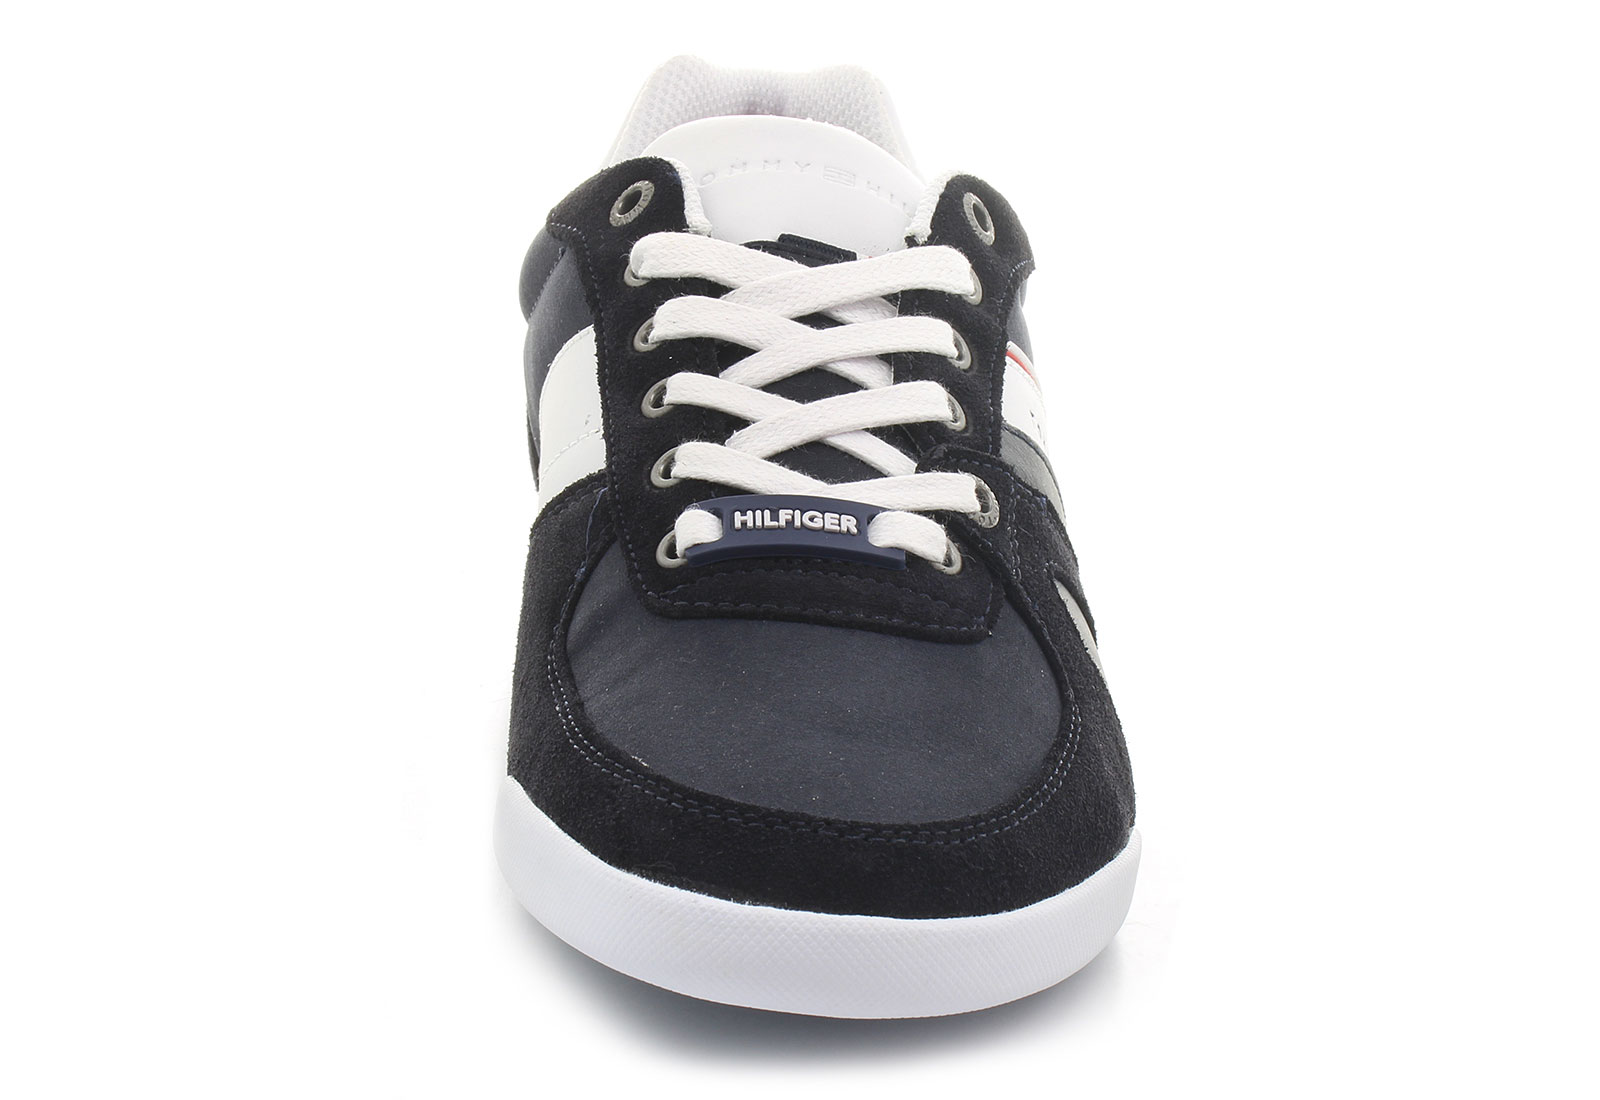 Tommy Hilfiger Shoes - Riley 2c - 16S-1103-403 - Online shop for ... 38ca1782fa